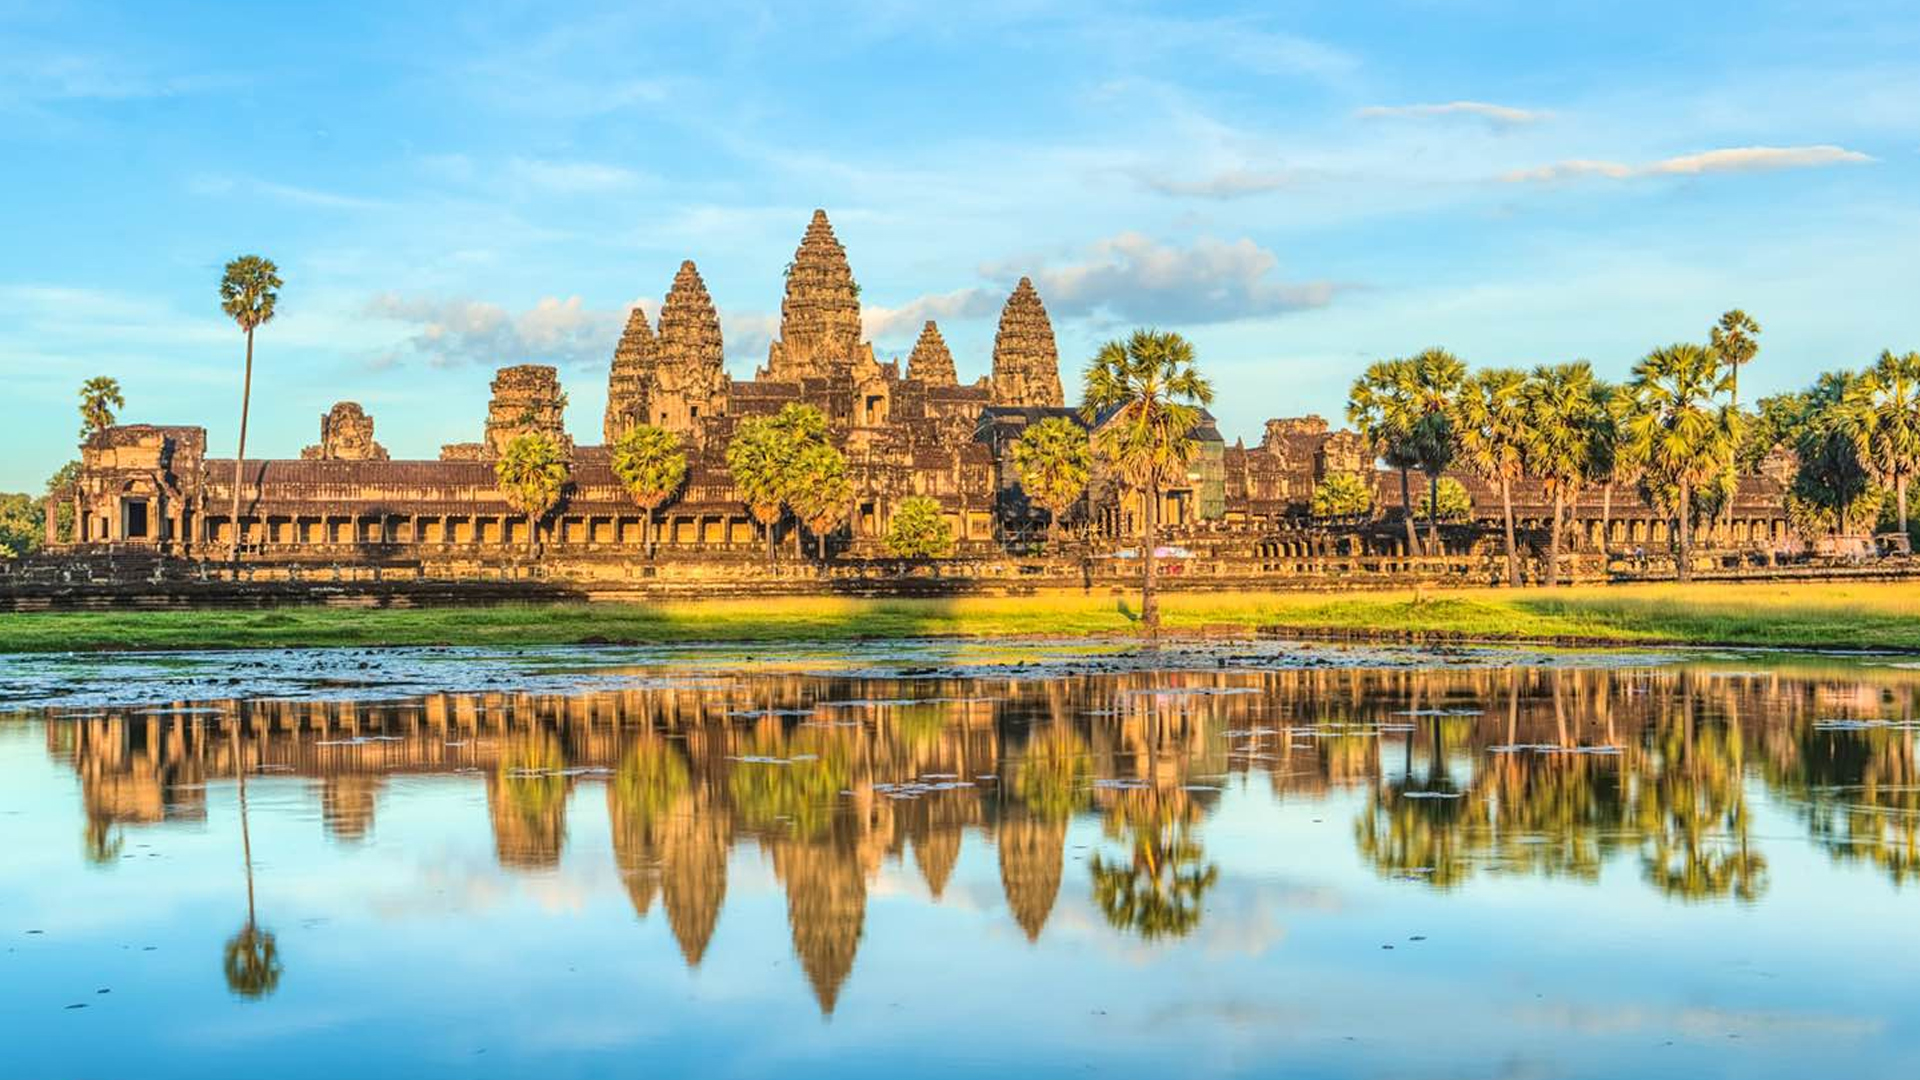 Cambodia 3days 2nights Siem Reap Angkor Wat Package Pan Bright Travel Service